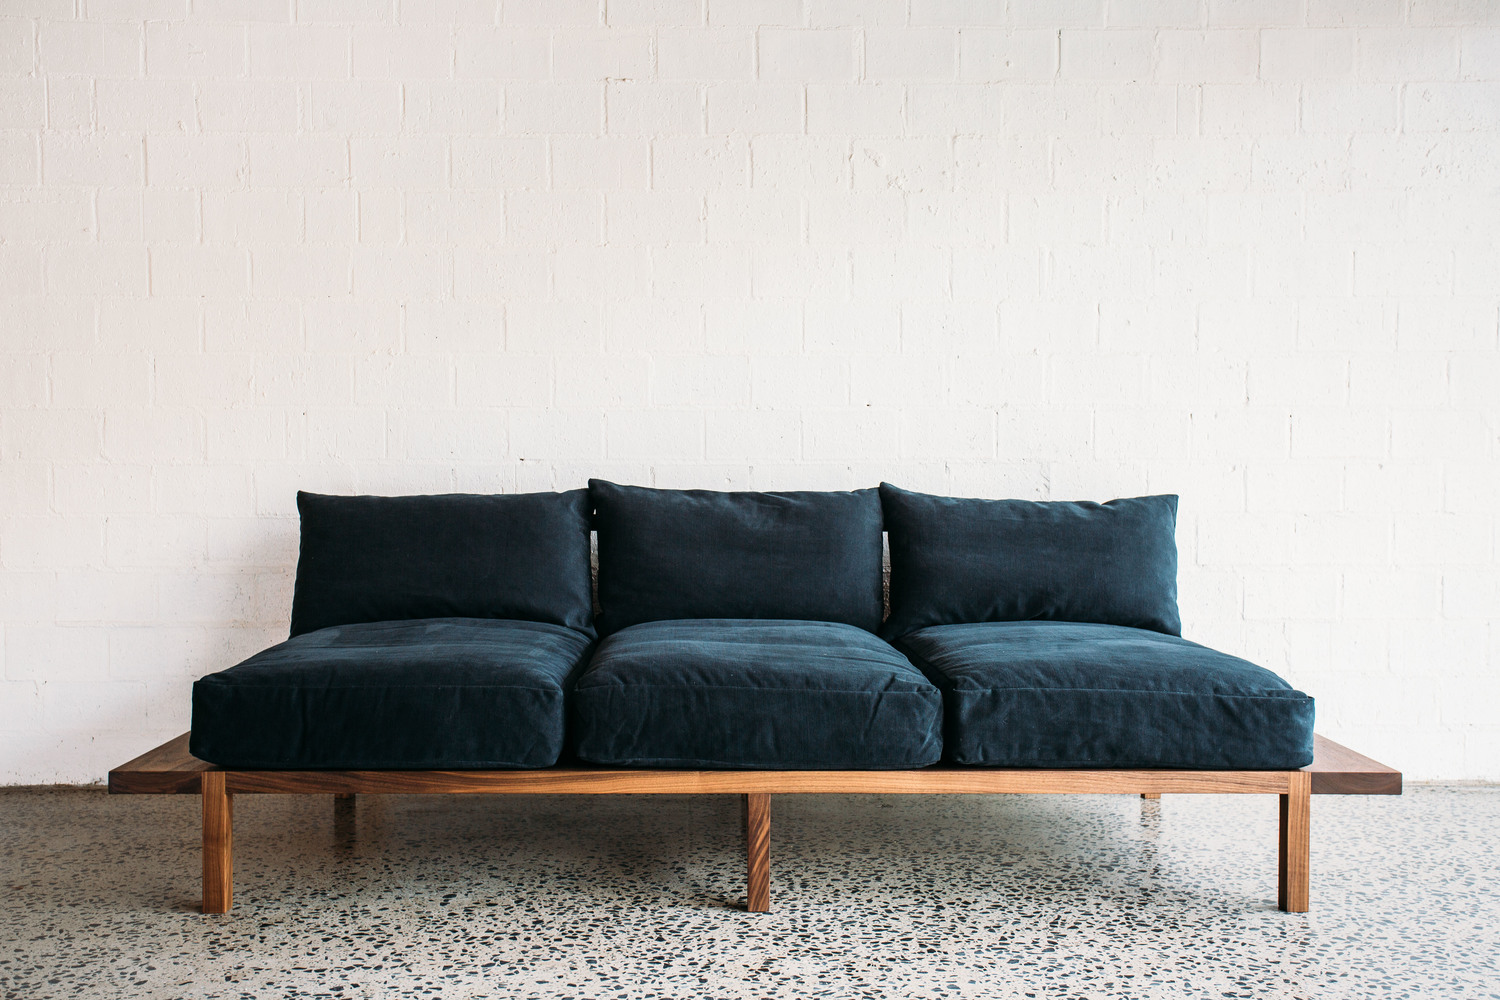 The Finley Sofa - JD.Lee Furniture - Front on shot